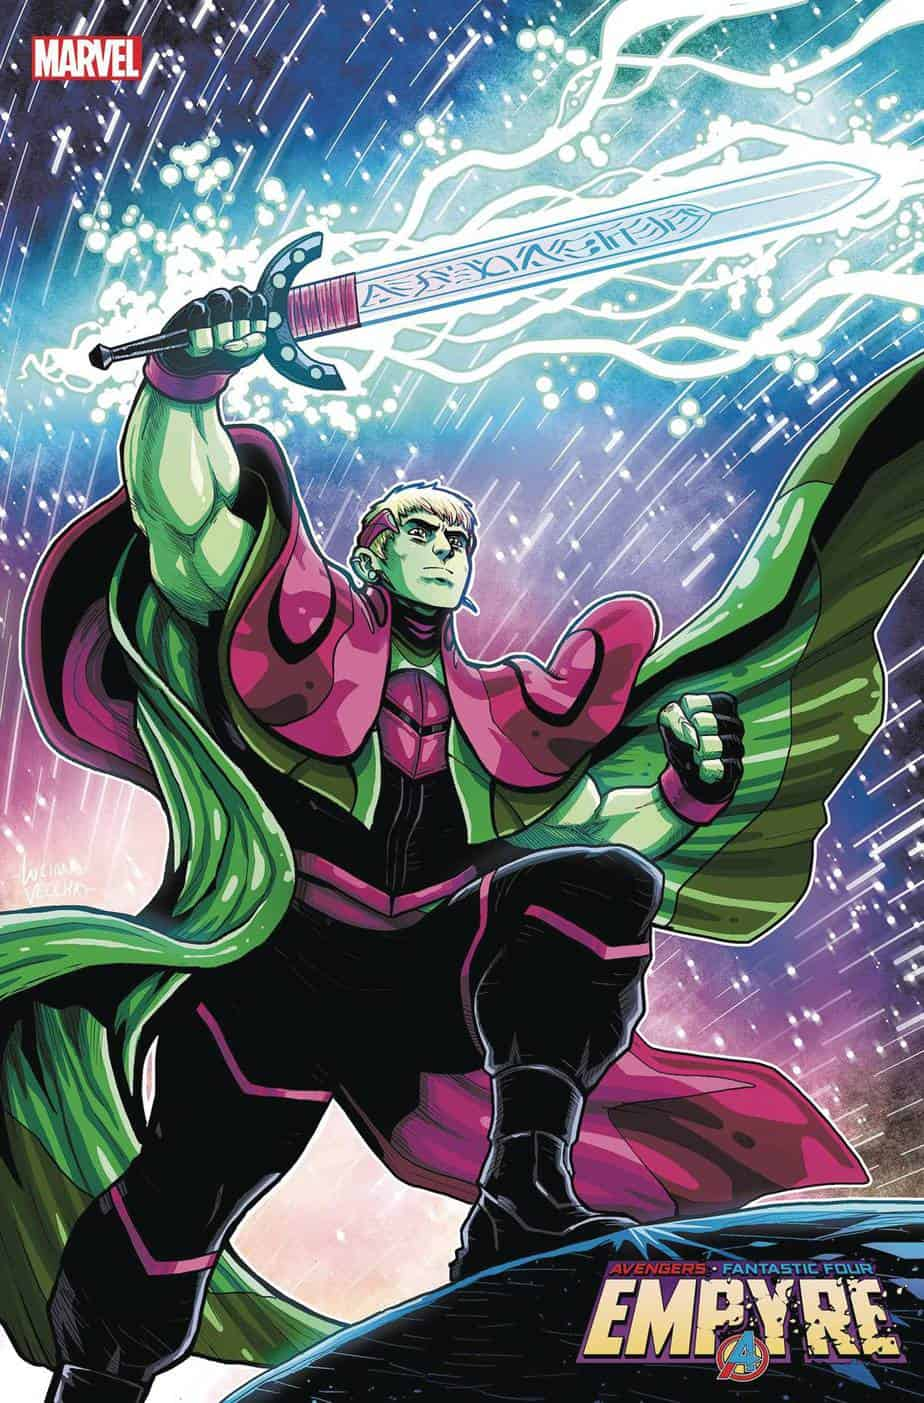 LORDS OF EMPYRE: Emperor Hulkling #1 - Cover B